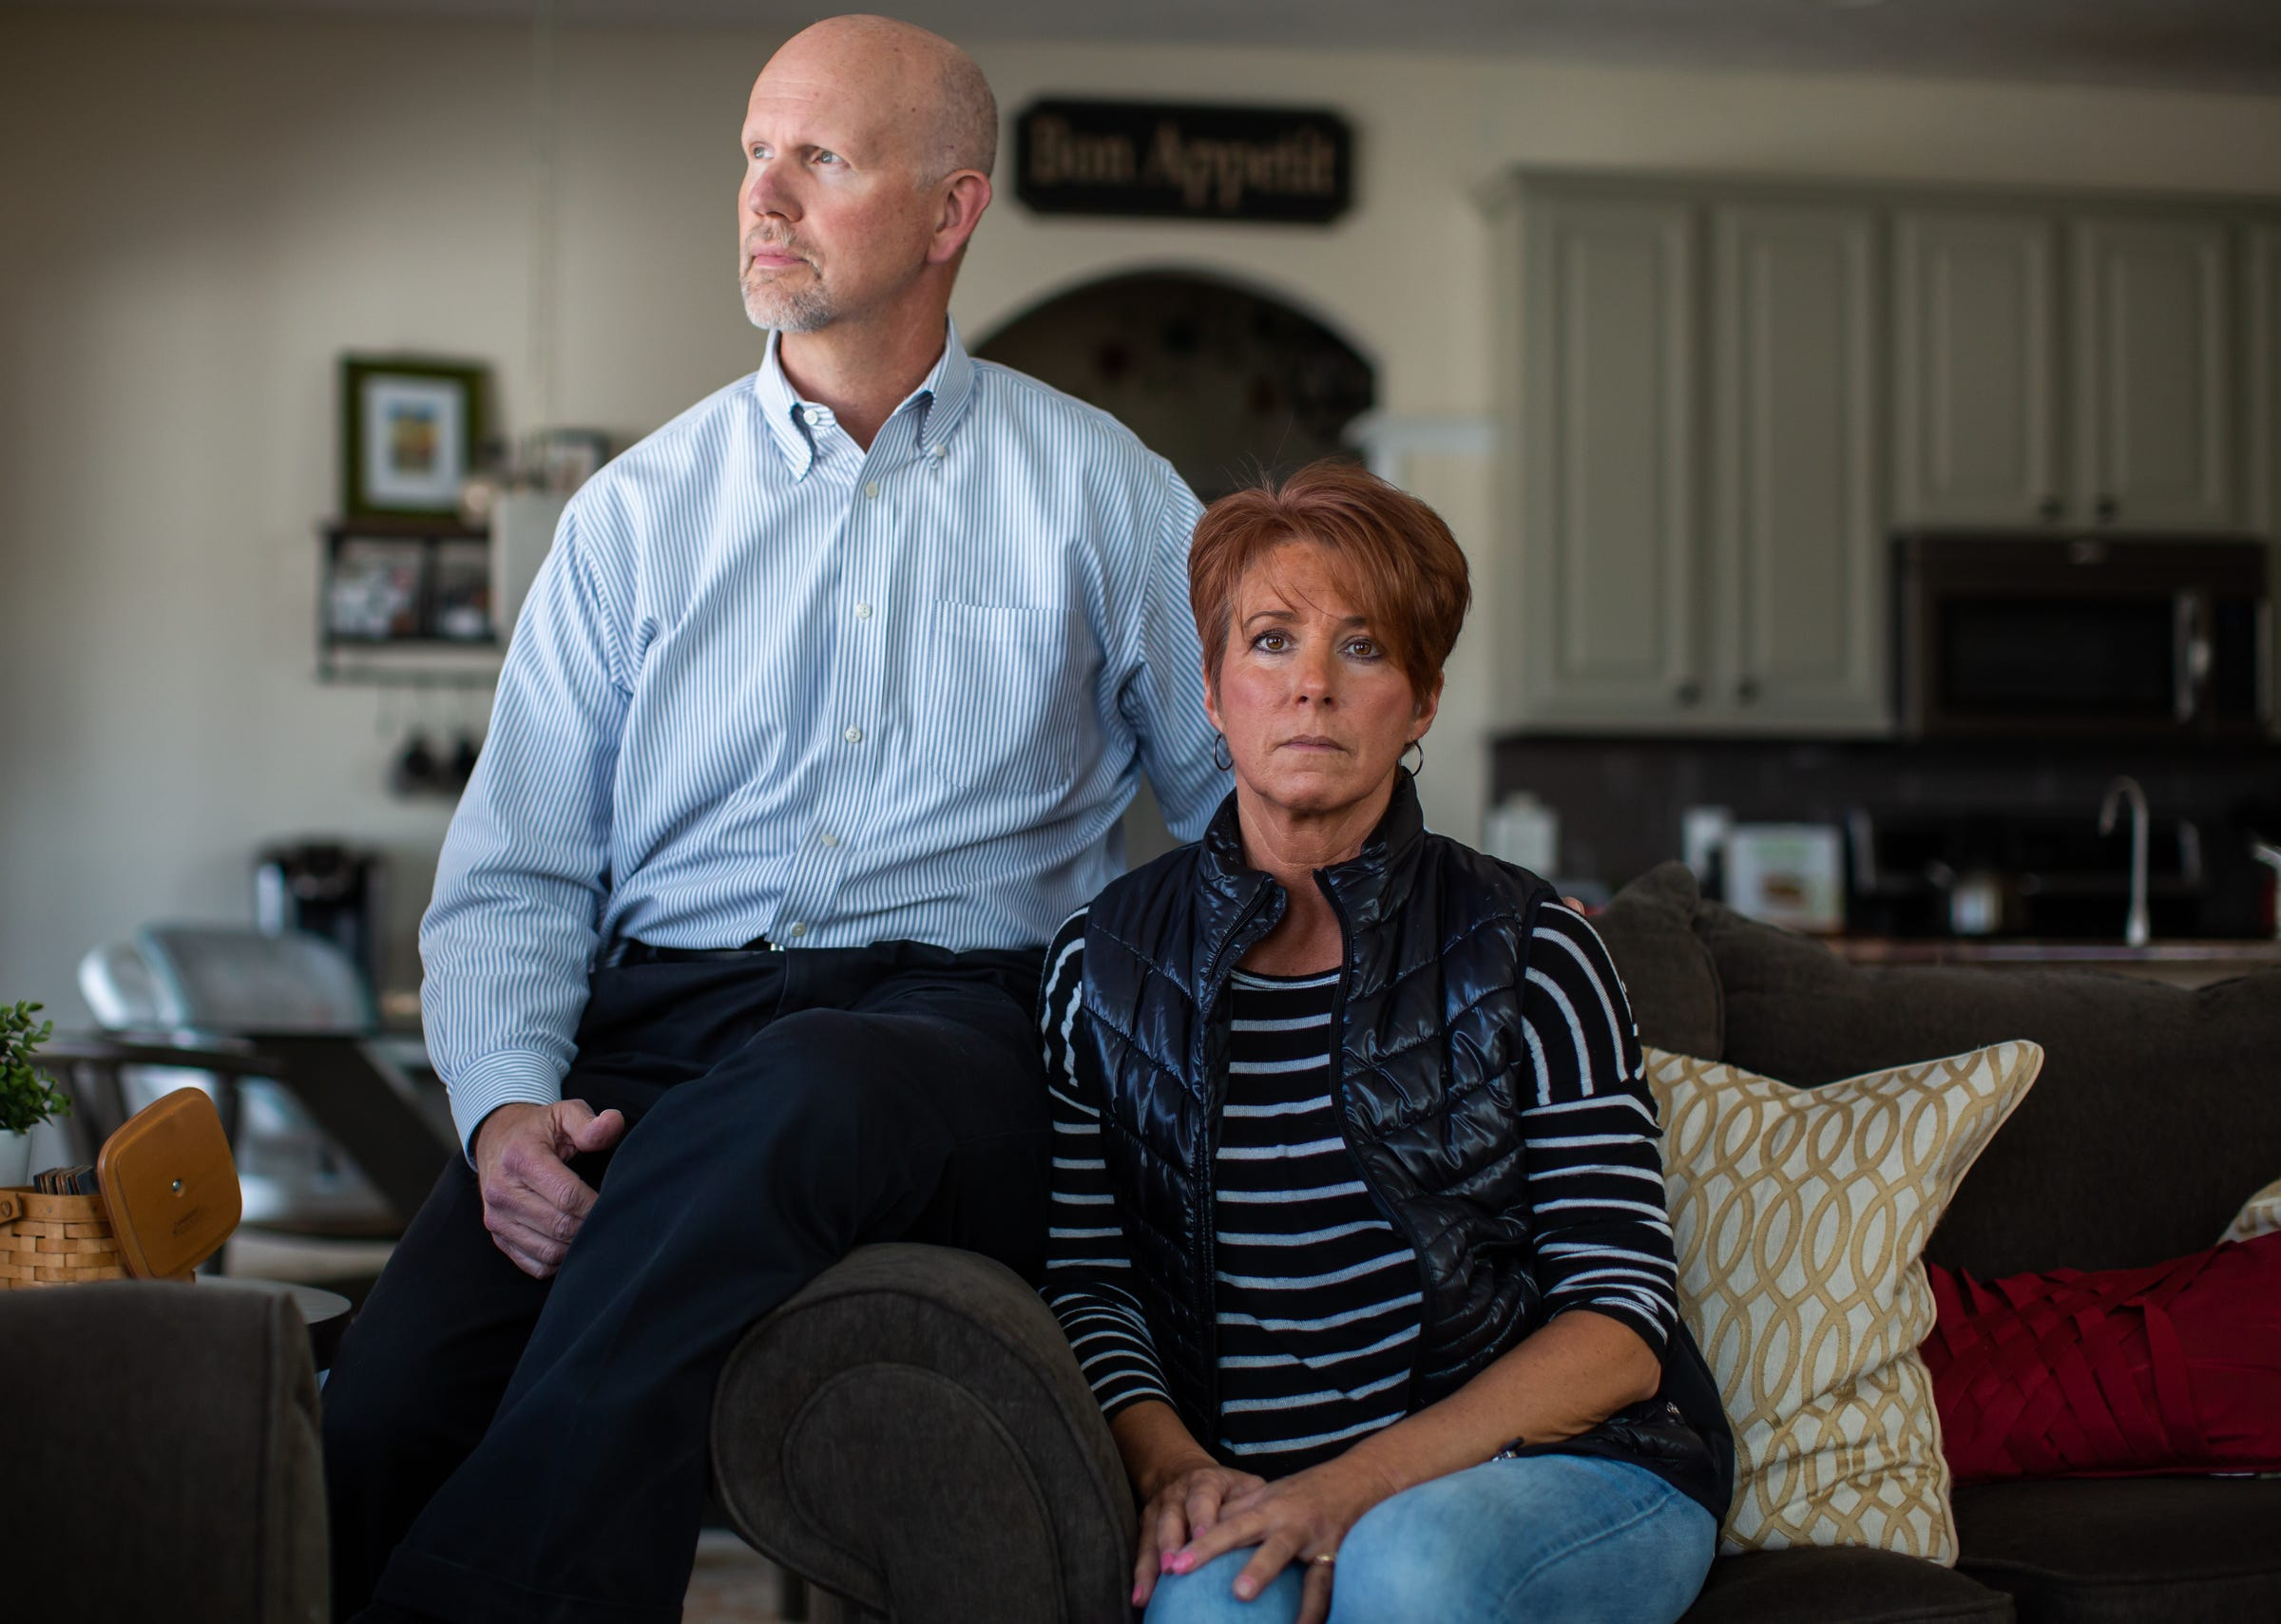 """""""There is a lot of fear in the unknown. You don't know how long we have been exposed. We don't know yet the levels that are in our blood, and how damaged are we,"""" Jill Osbeck said while sitting with her husband Tim Osbeck at their home in Rockford on Monday, March 11, 2019. The Osbeck household has had an initial level 8,900 parts-per-trillion PFAS detected in their water and have had readings as high as 17,600 part-per-trillion during weekly water tests."""